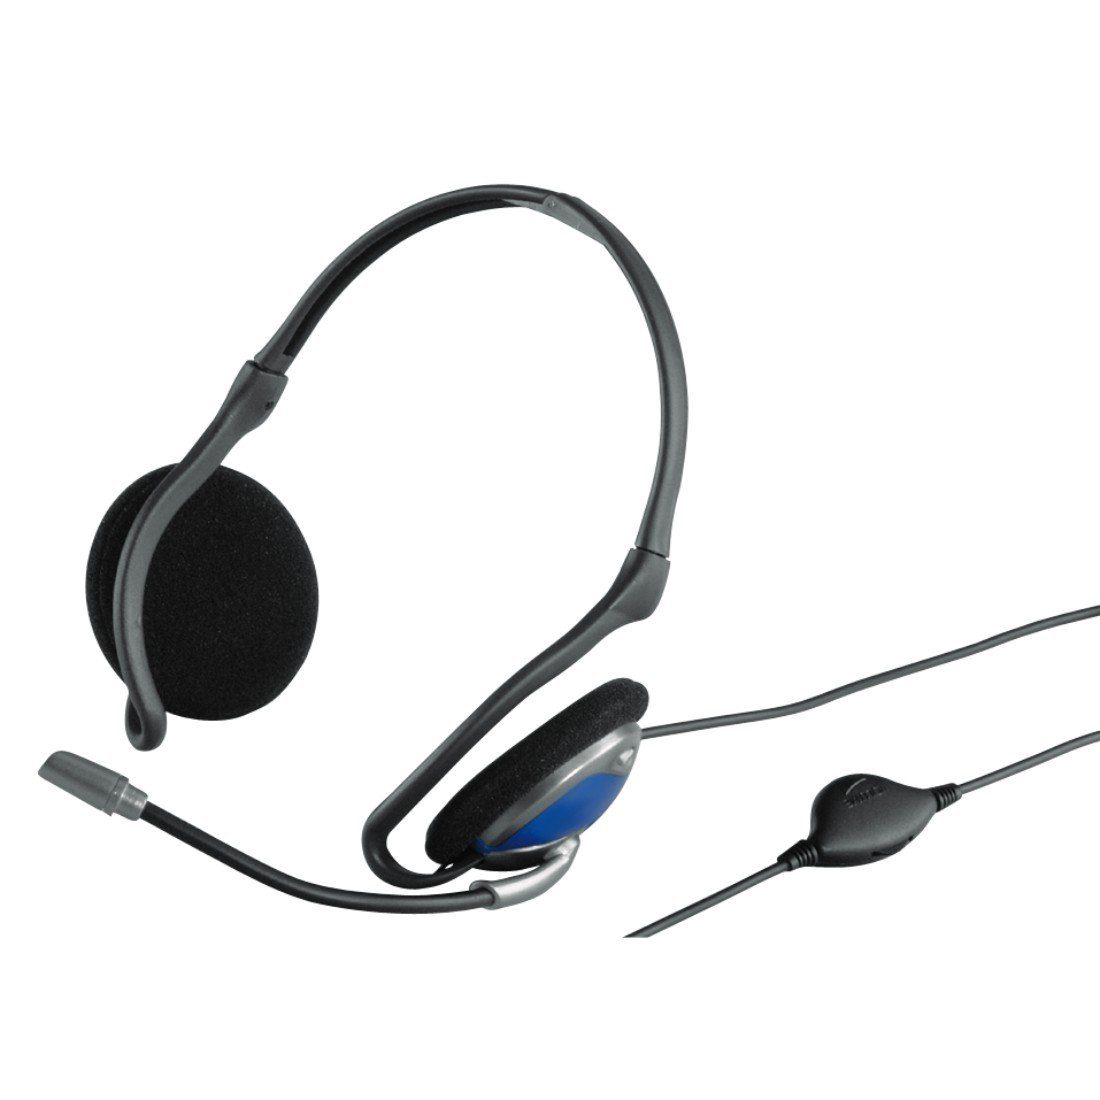 Exxter PC-Nacken-Headset HE-200